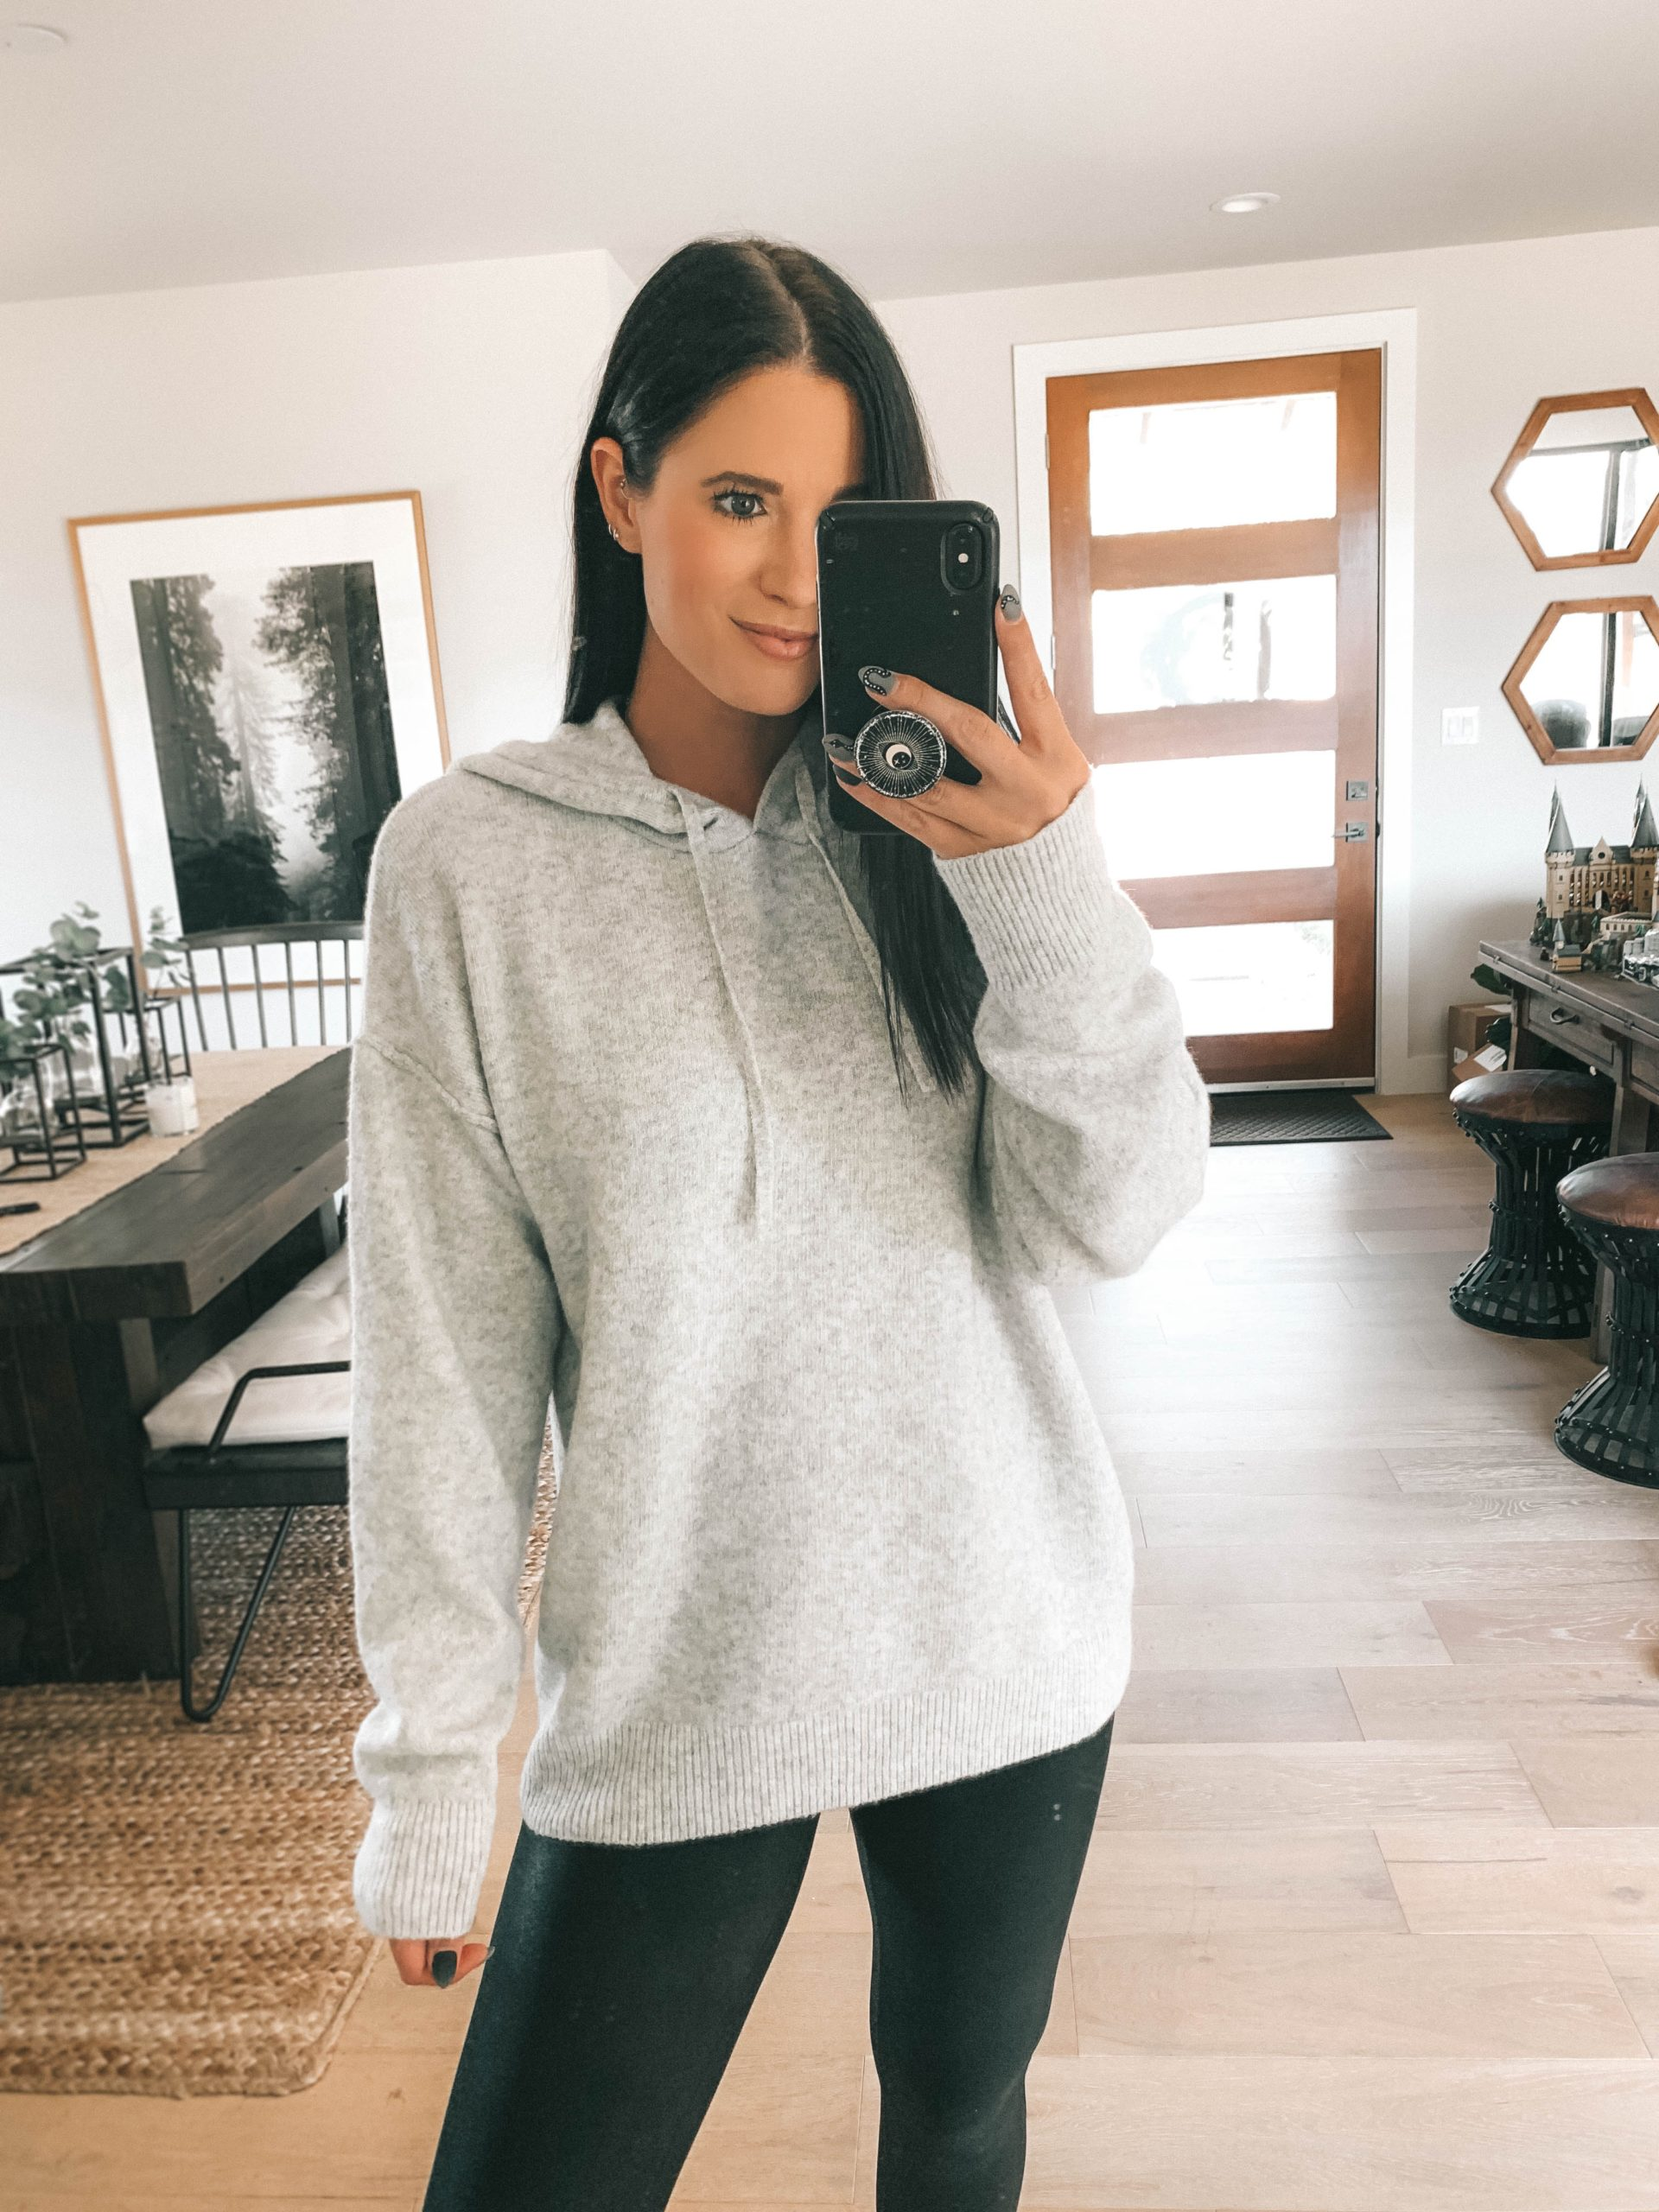 Nordstrom Anniversary Sale by popular Austin fashion blog, Dressed to Kill: image of a woman wearing a Nordstrom Faux Leather Leggings SPANX and Nordstrom Cotton Blend Sweater Hoodie TREASURE & BOND.